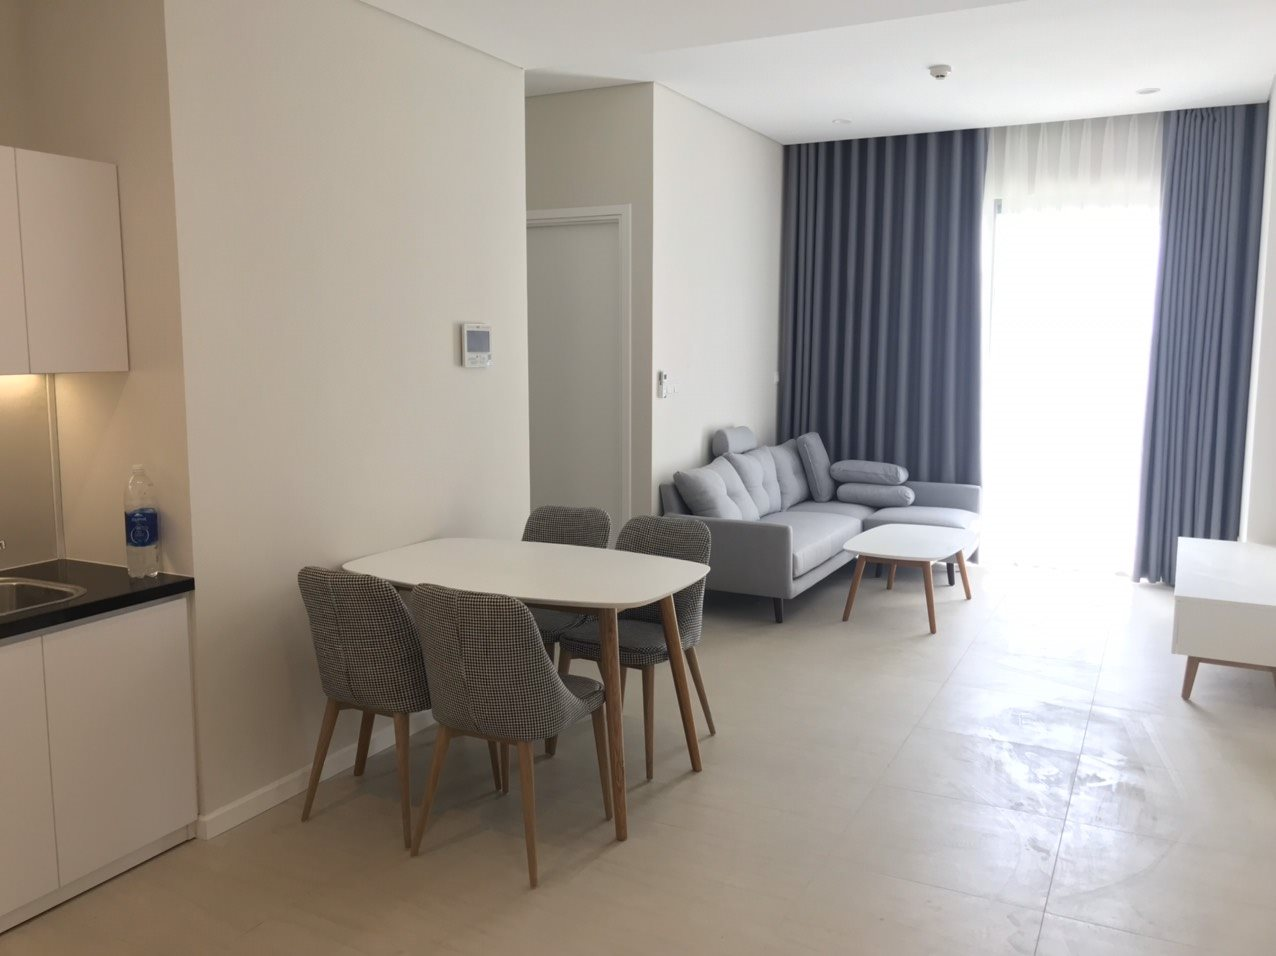 DI0883 - Diamond Island Apartment For Rent & Sale in Ho Chi Minh City - 1 bedroom